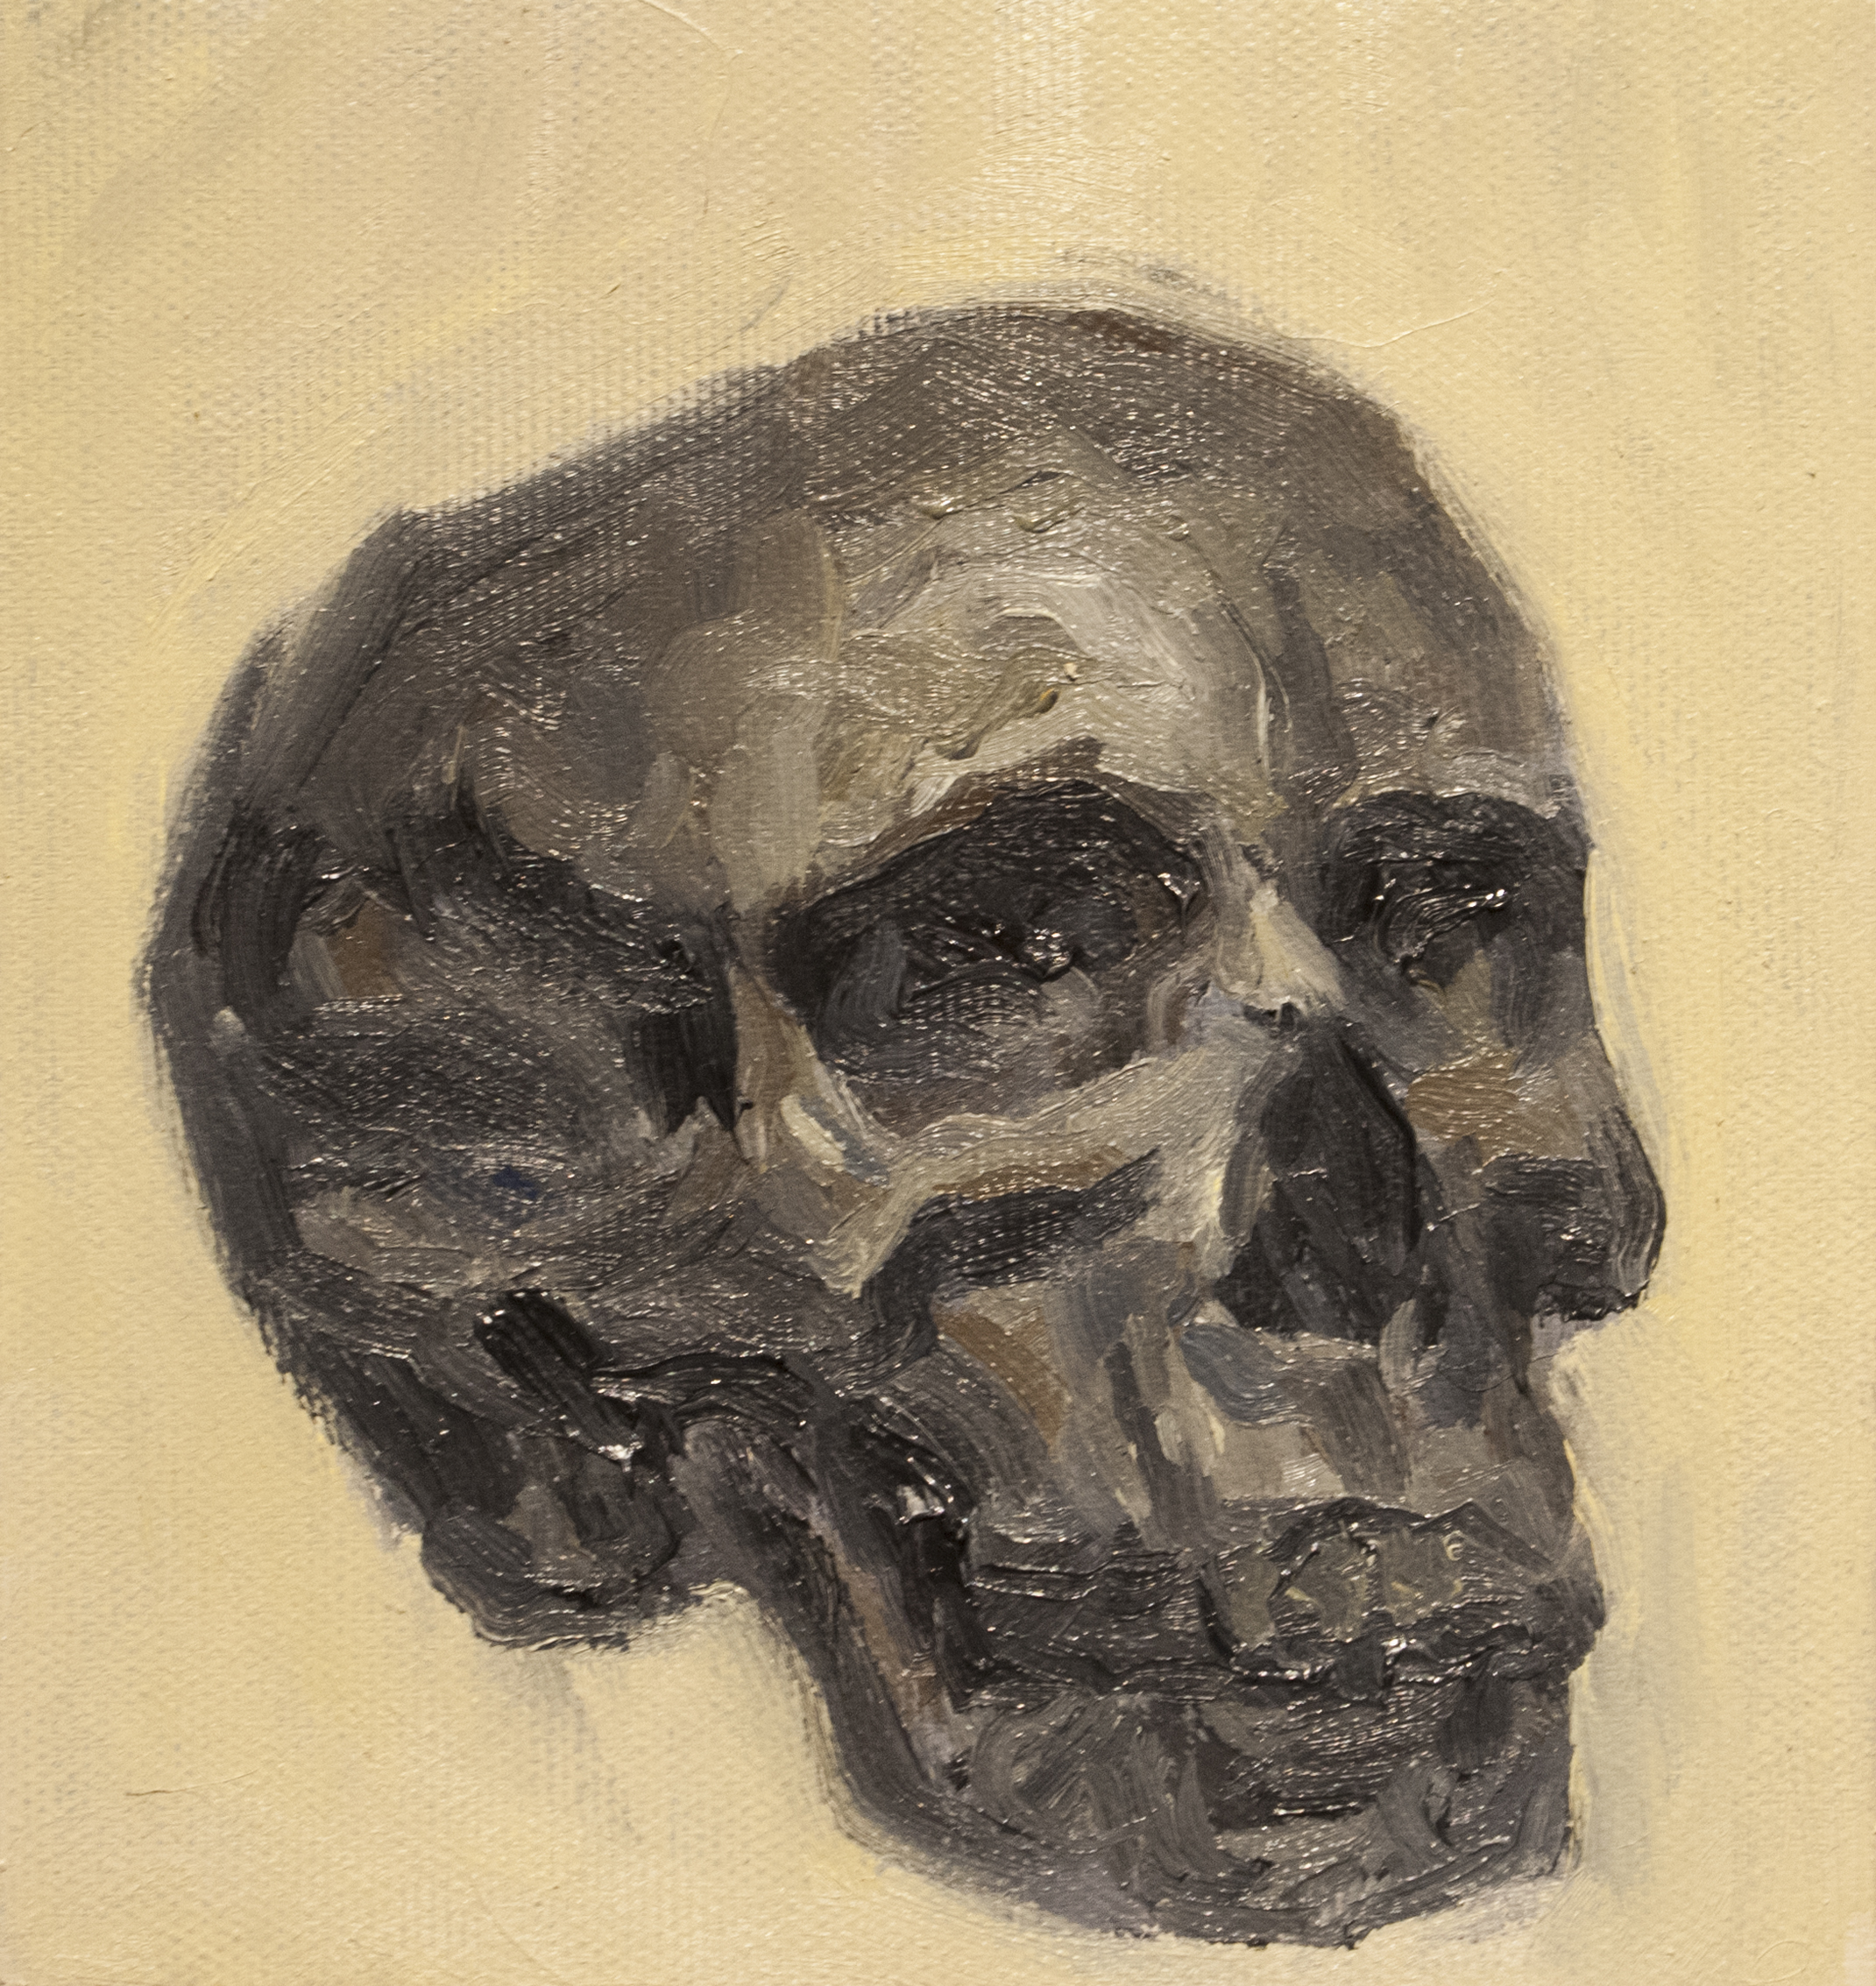 Skull Study #2 / Oil on Canvas / 15 x 16 cm / 2017